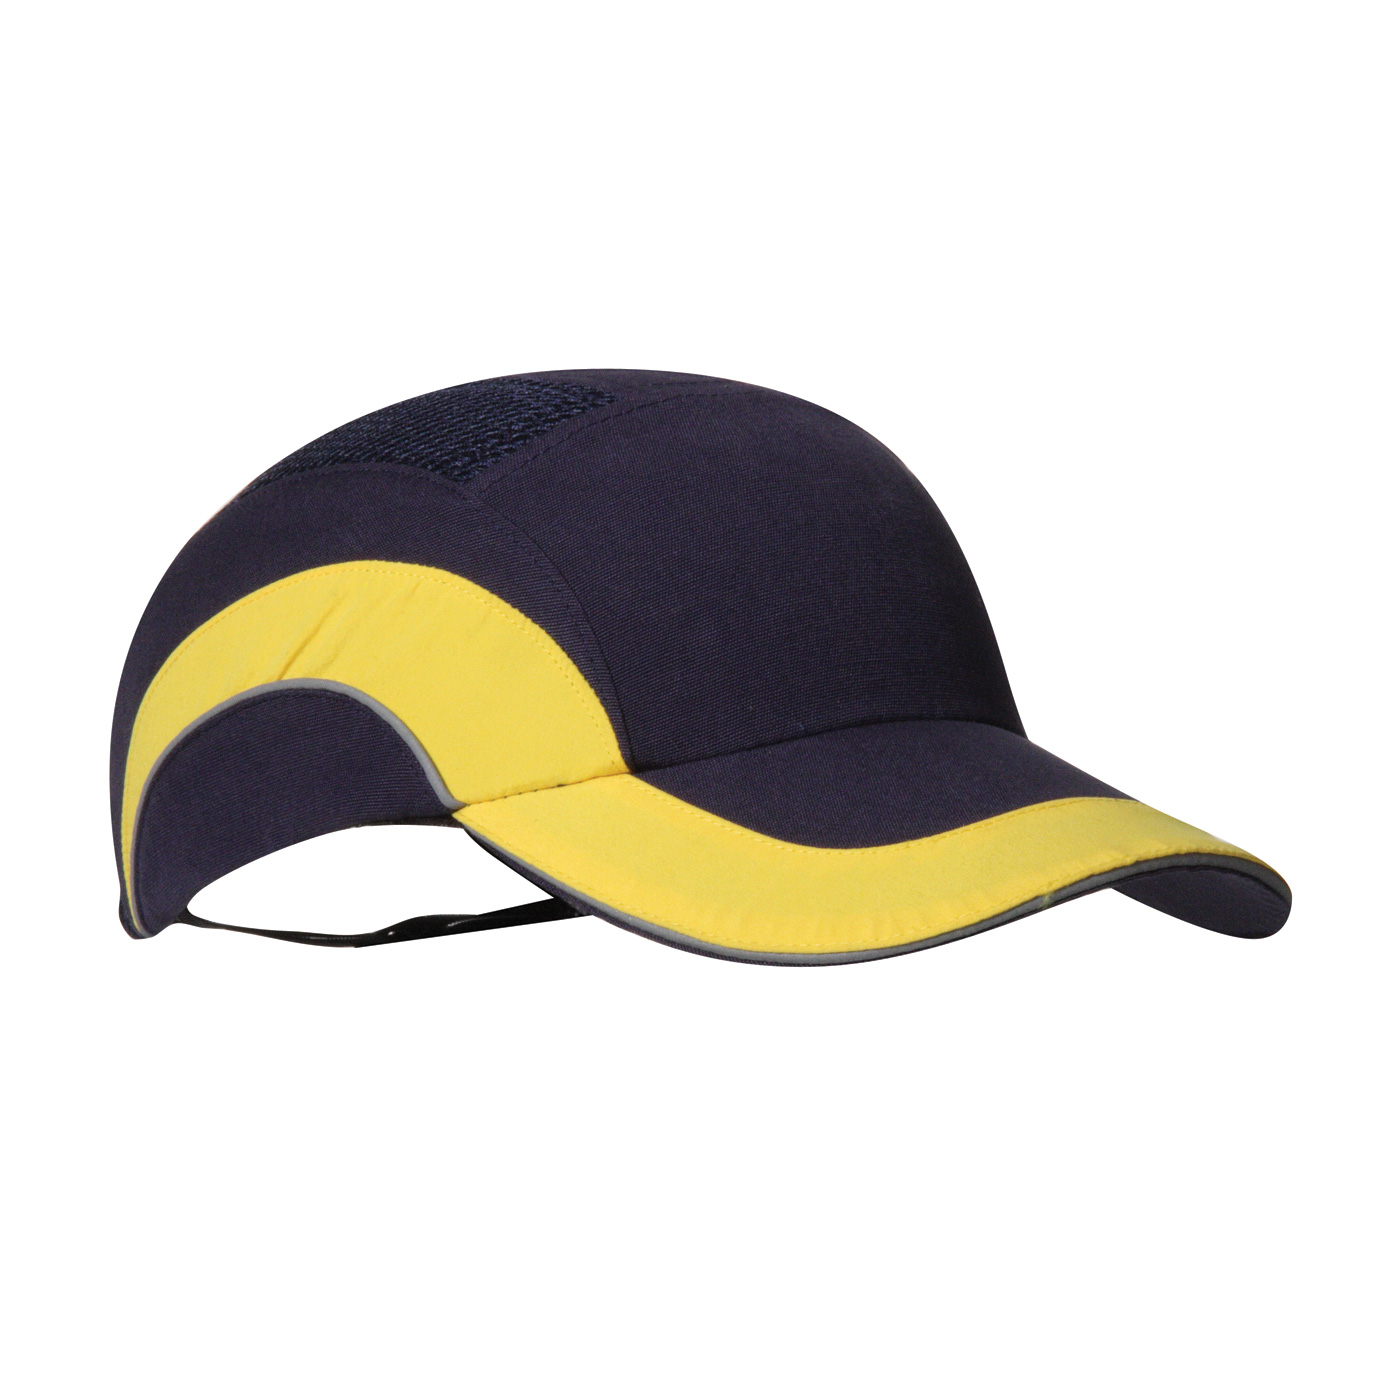 e190af0bb293e HardCap A1+™ Baseball Style Bump Cap with HDPE Protective Liner and  Adjustable Back. Navy